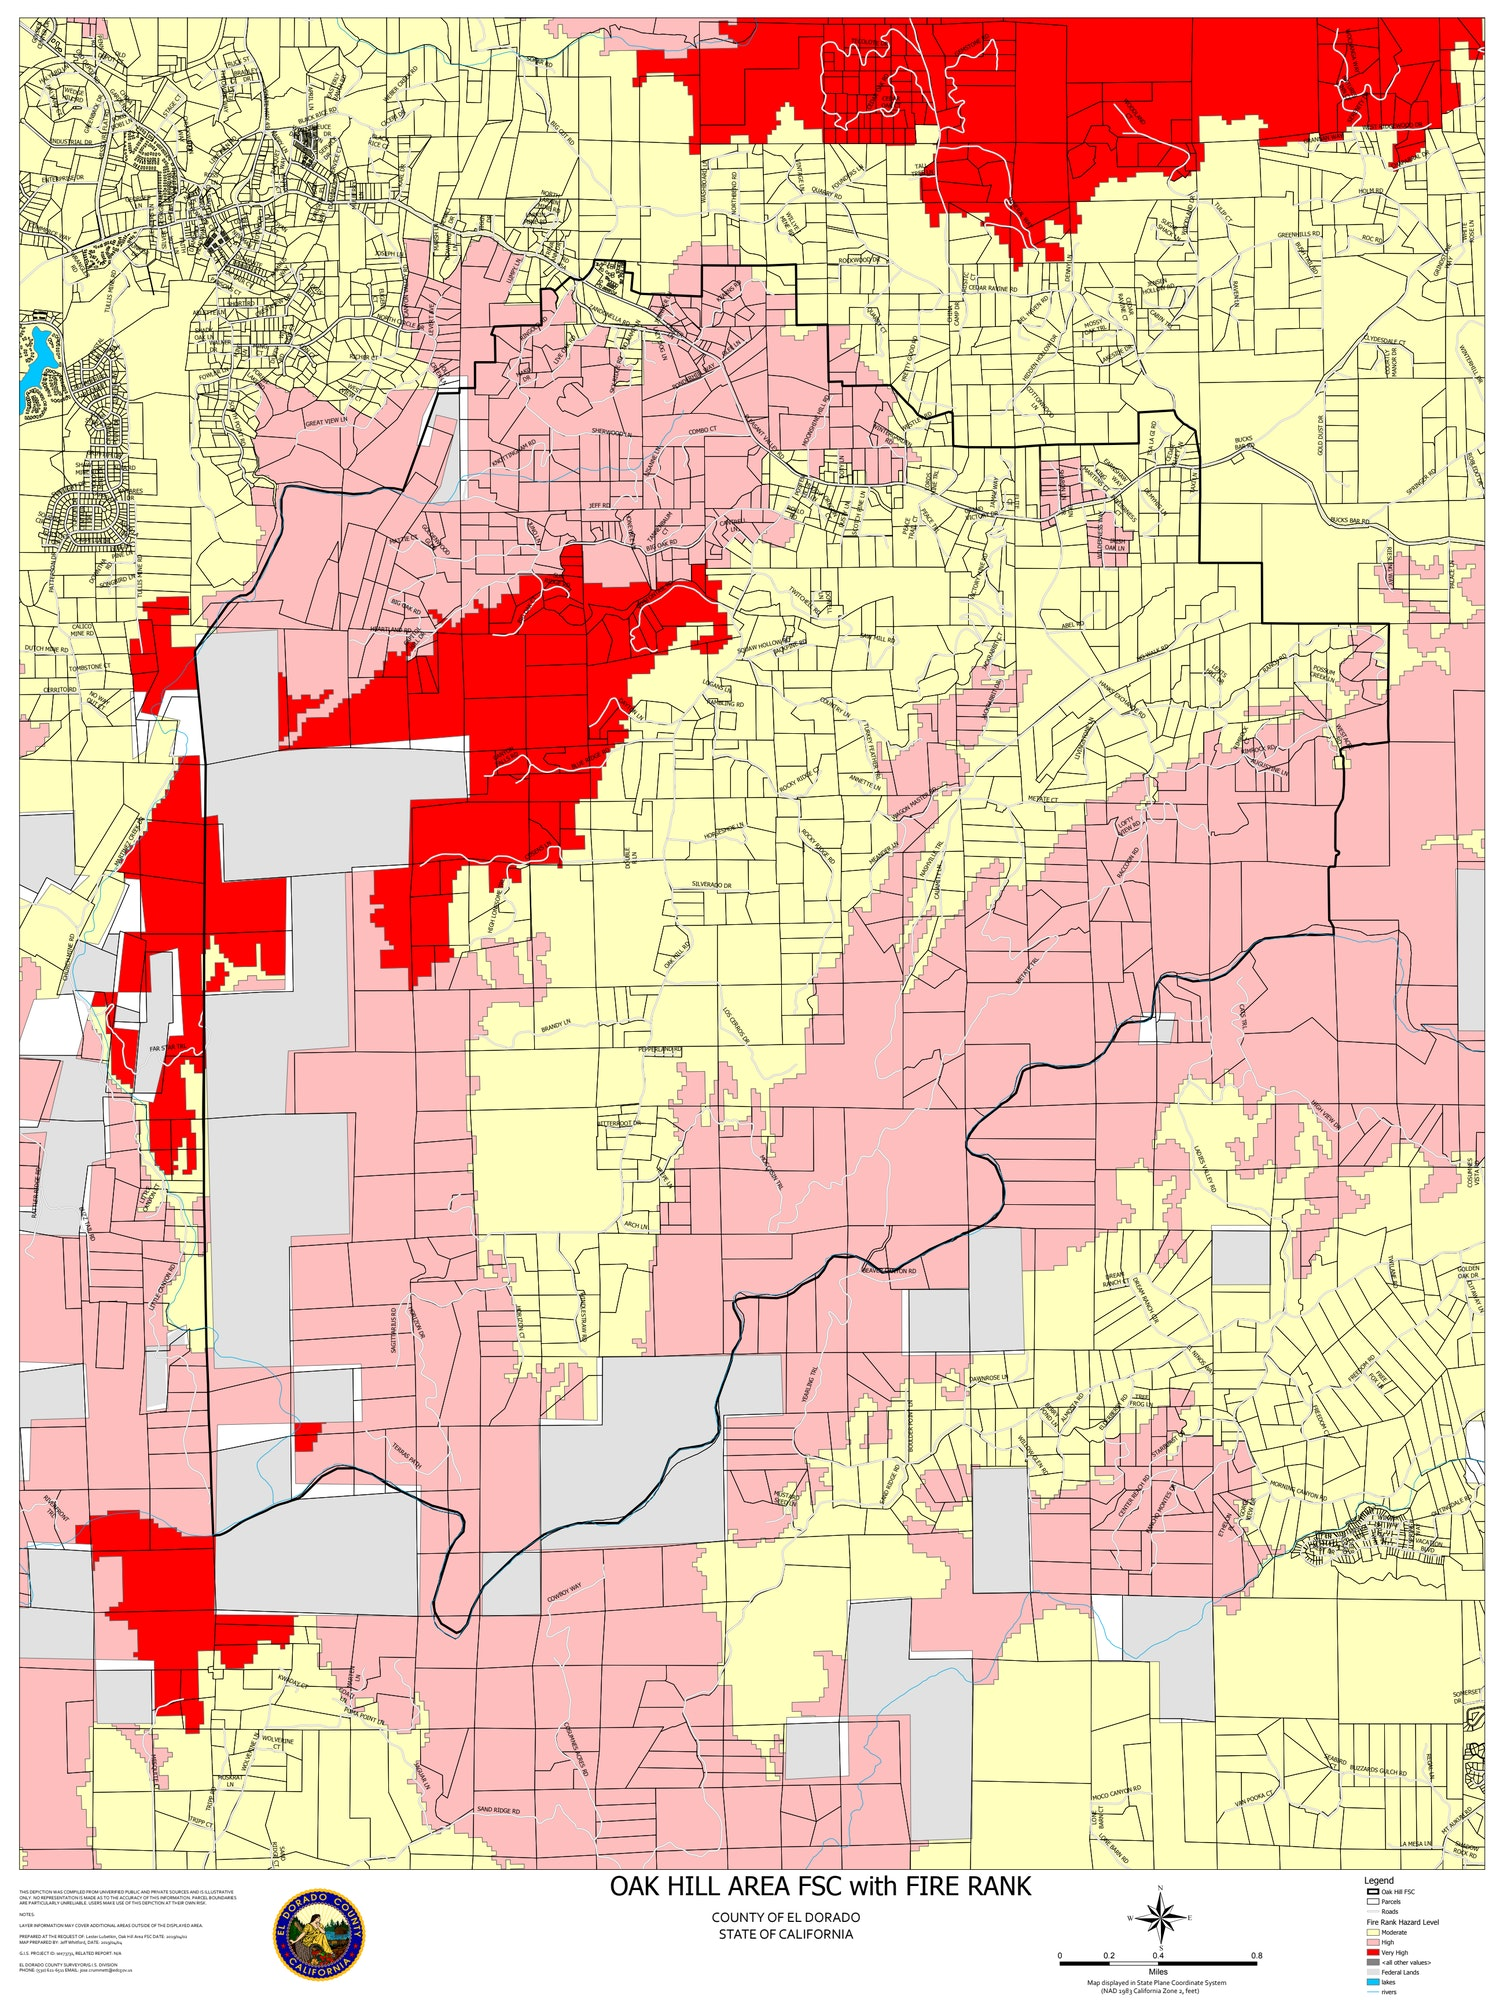 Map showing Fire Hazard Severity levels in the Oak Hill Area Fire Safe Council